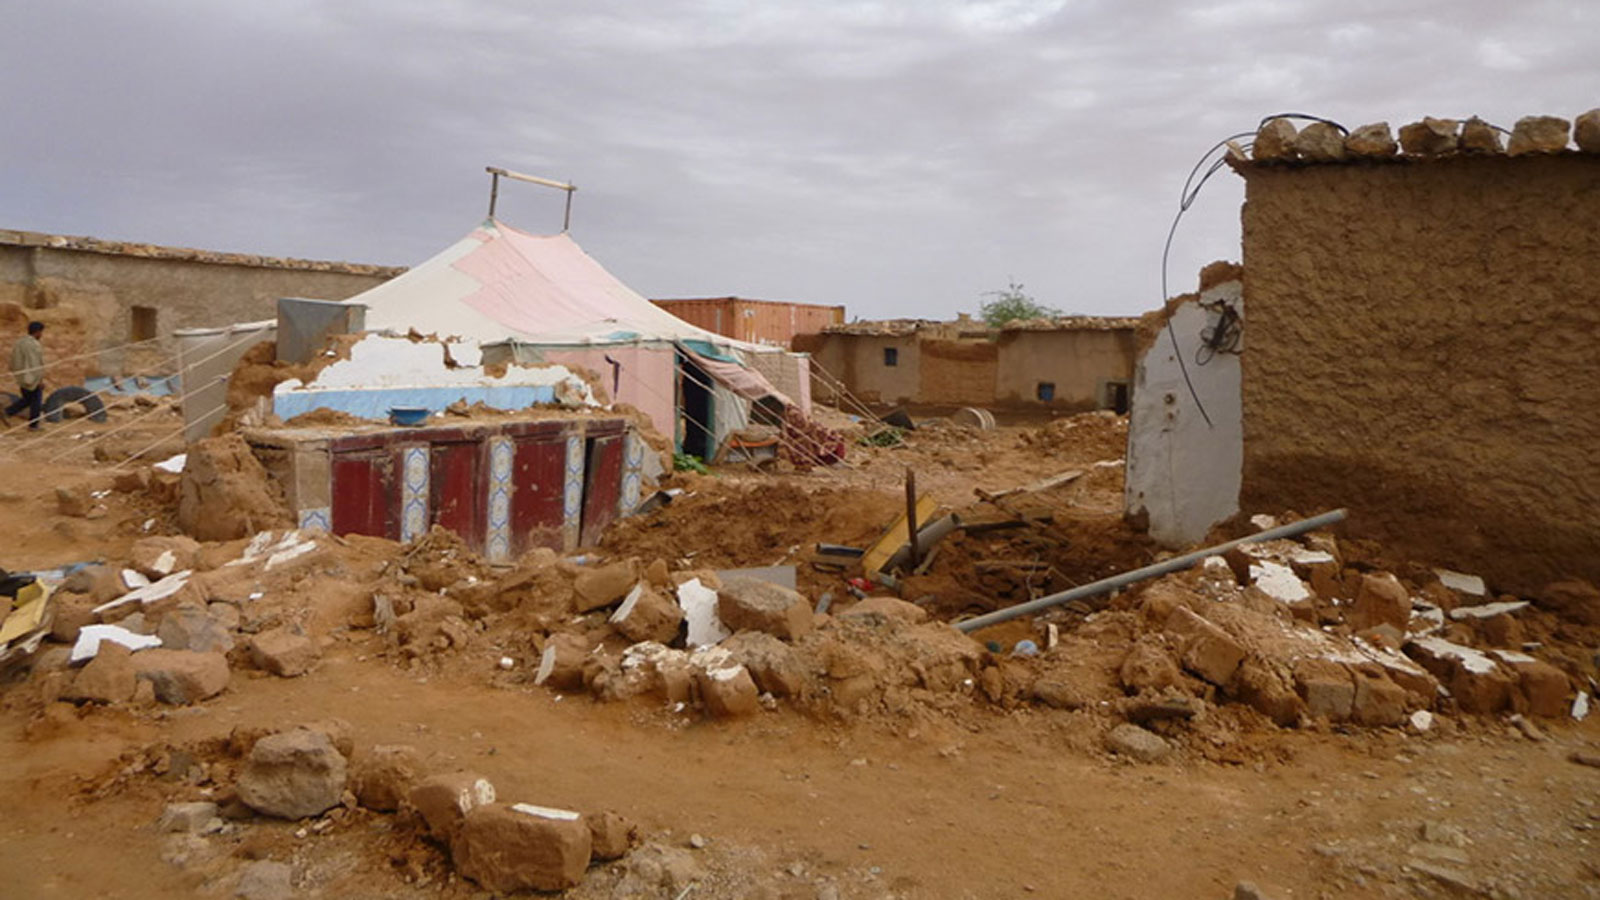 Responding to Flooding in Algerian Refugee Camps